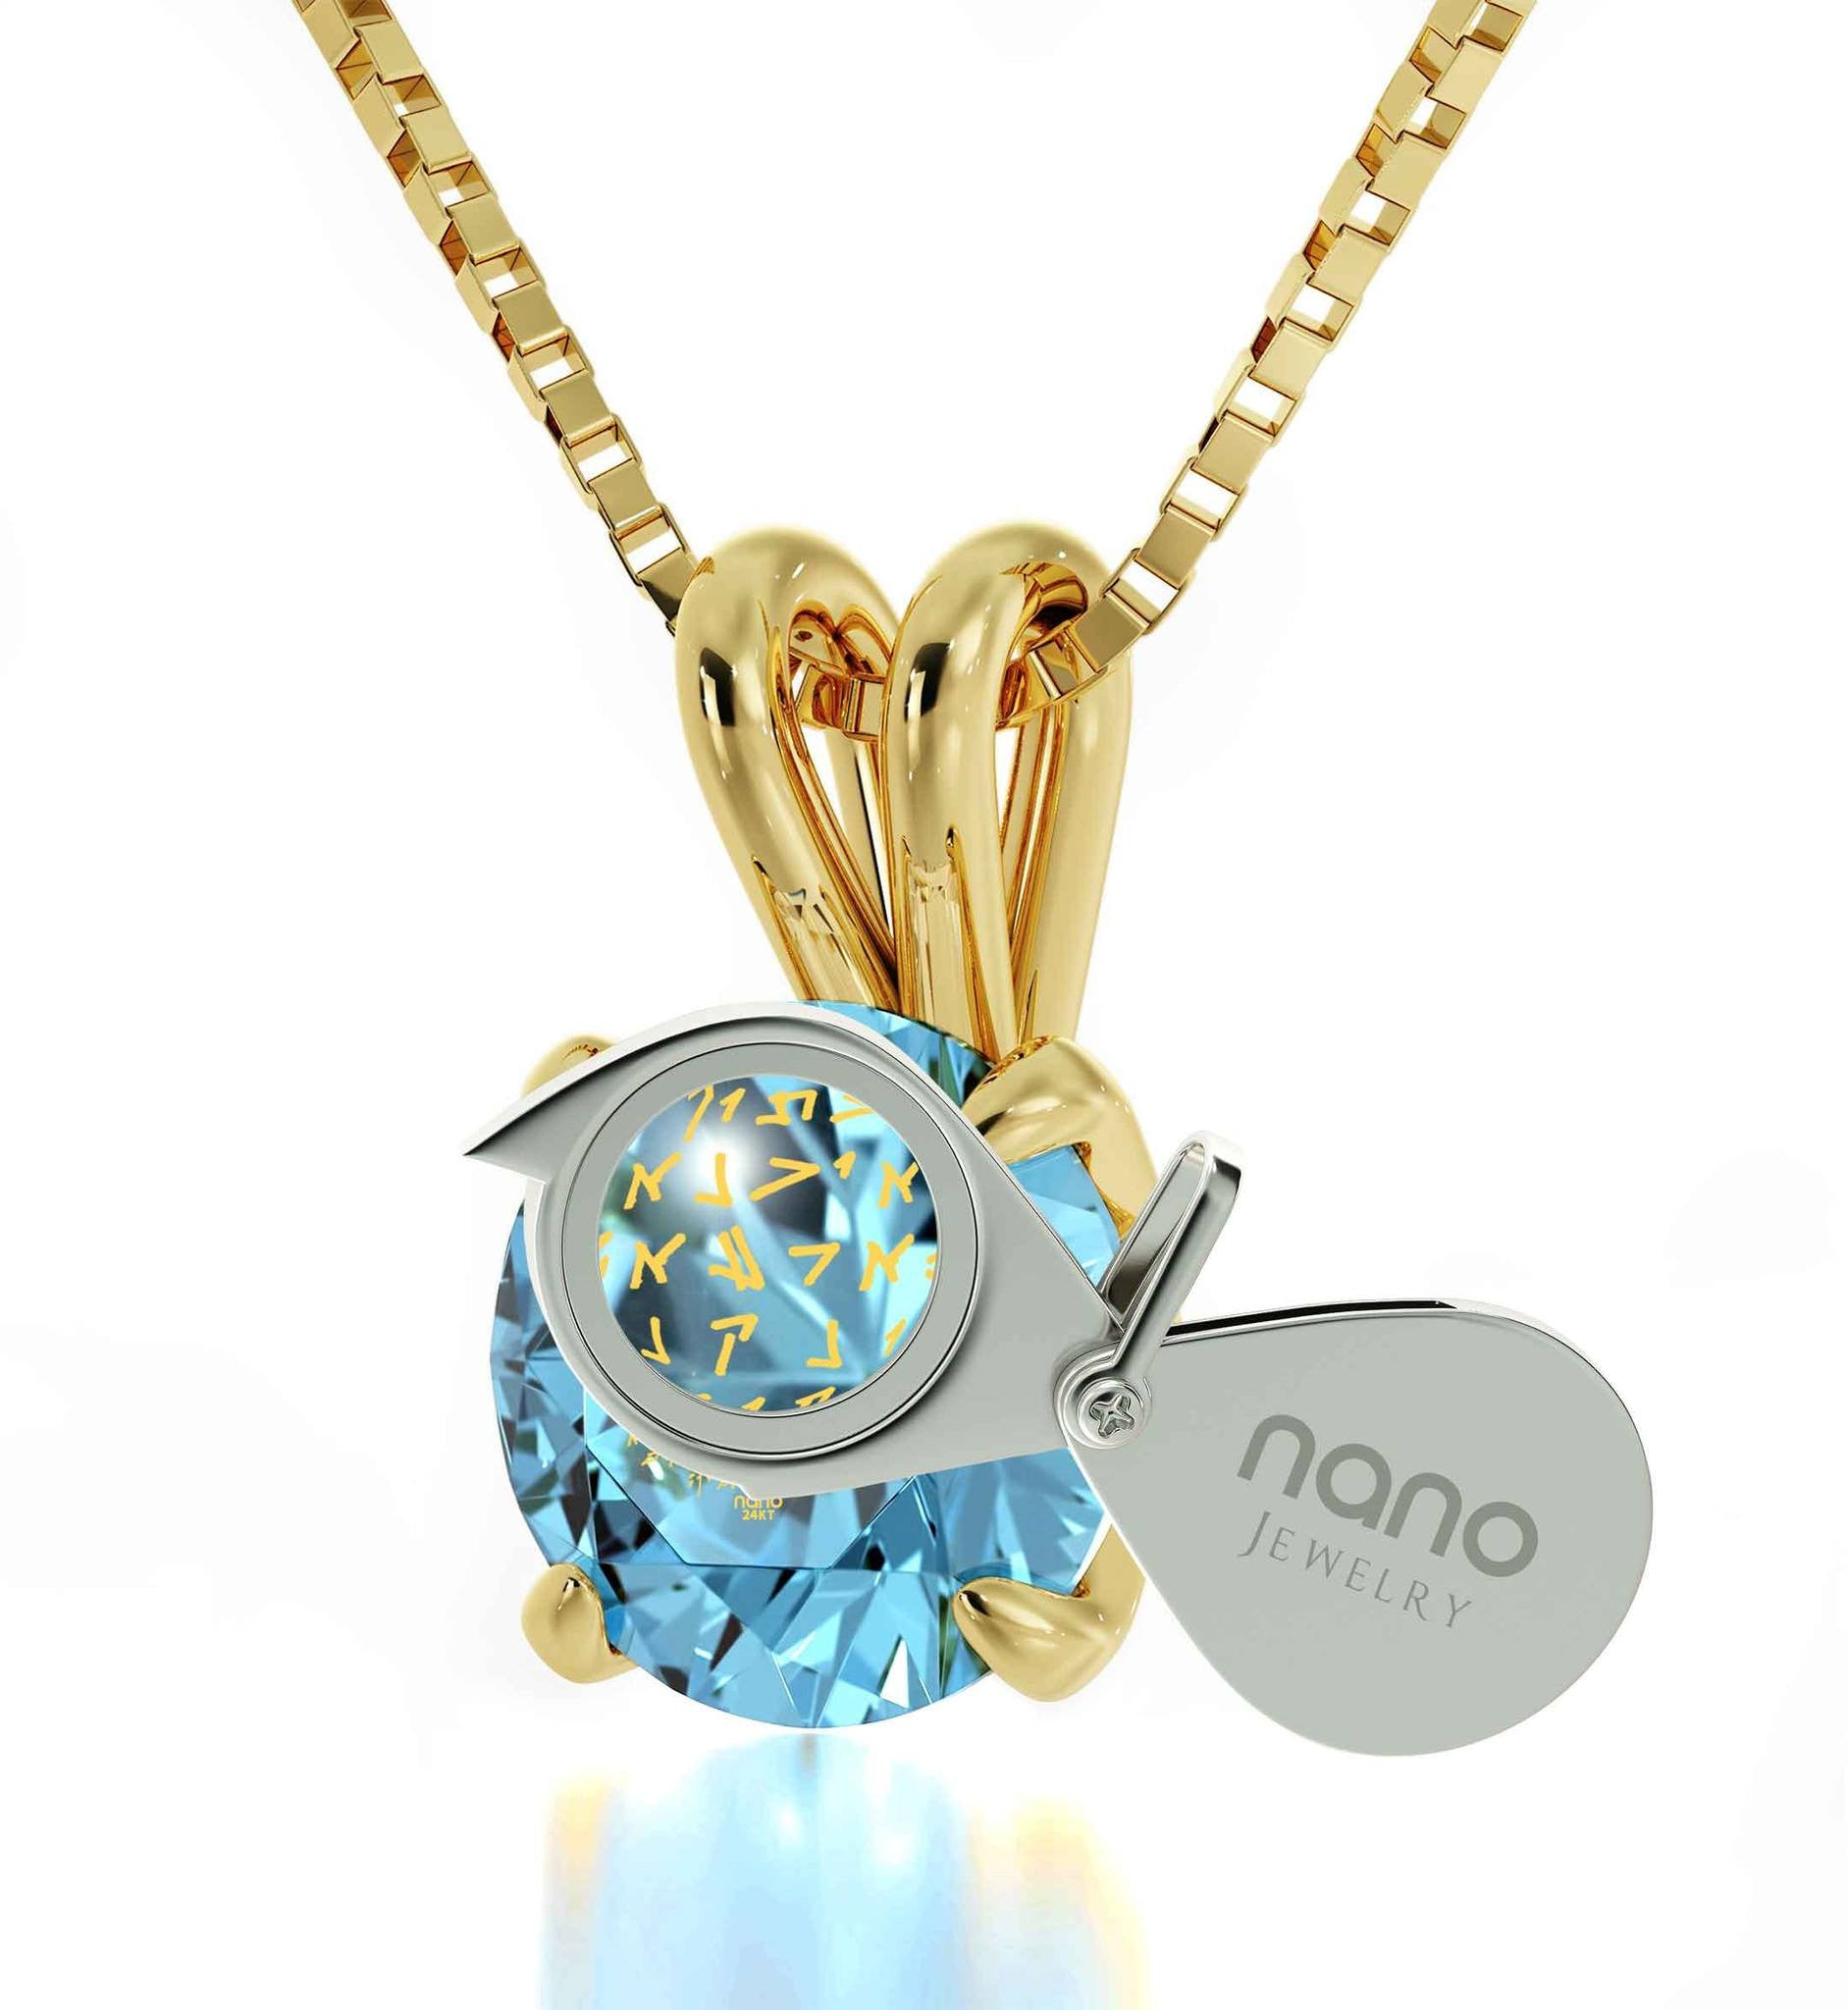 """""Our Father"" in Aramaic, Cool Presents for Christmas, Religious Gifts for Women, Solitaire Diamond Necklace, by Nano Jewelry"""